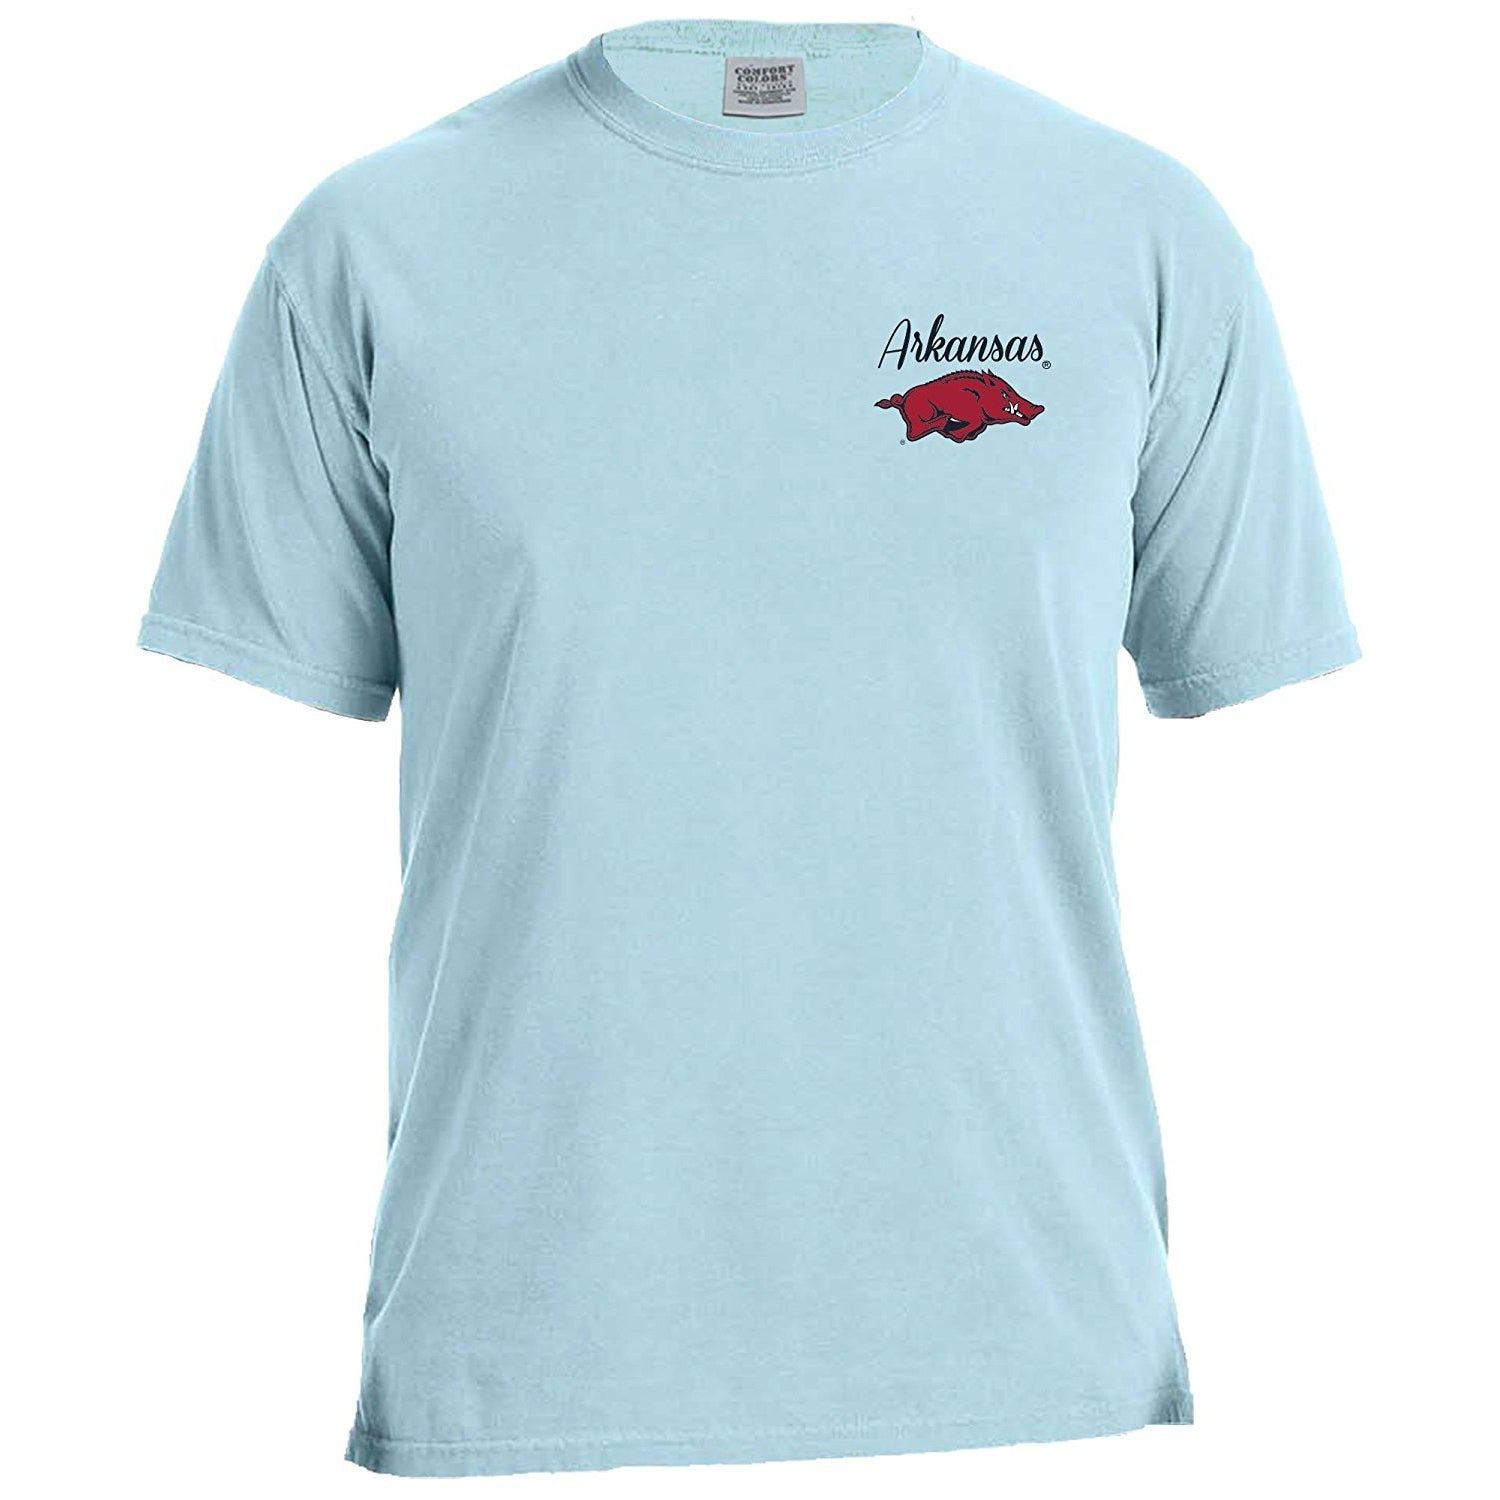 Love the South T-Shirt - Arkansas-Southern Ivy Boutique